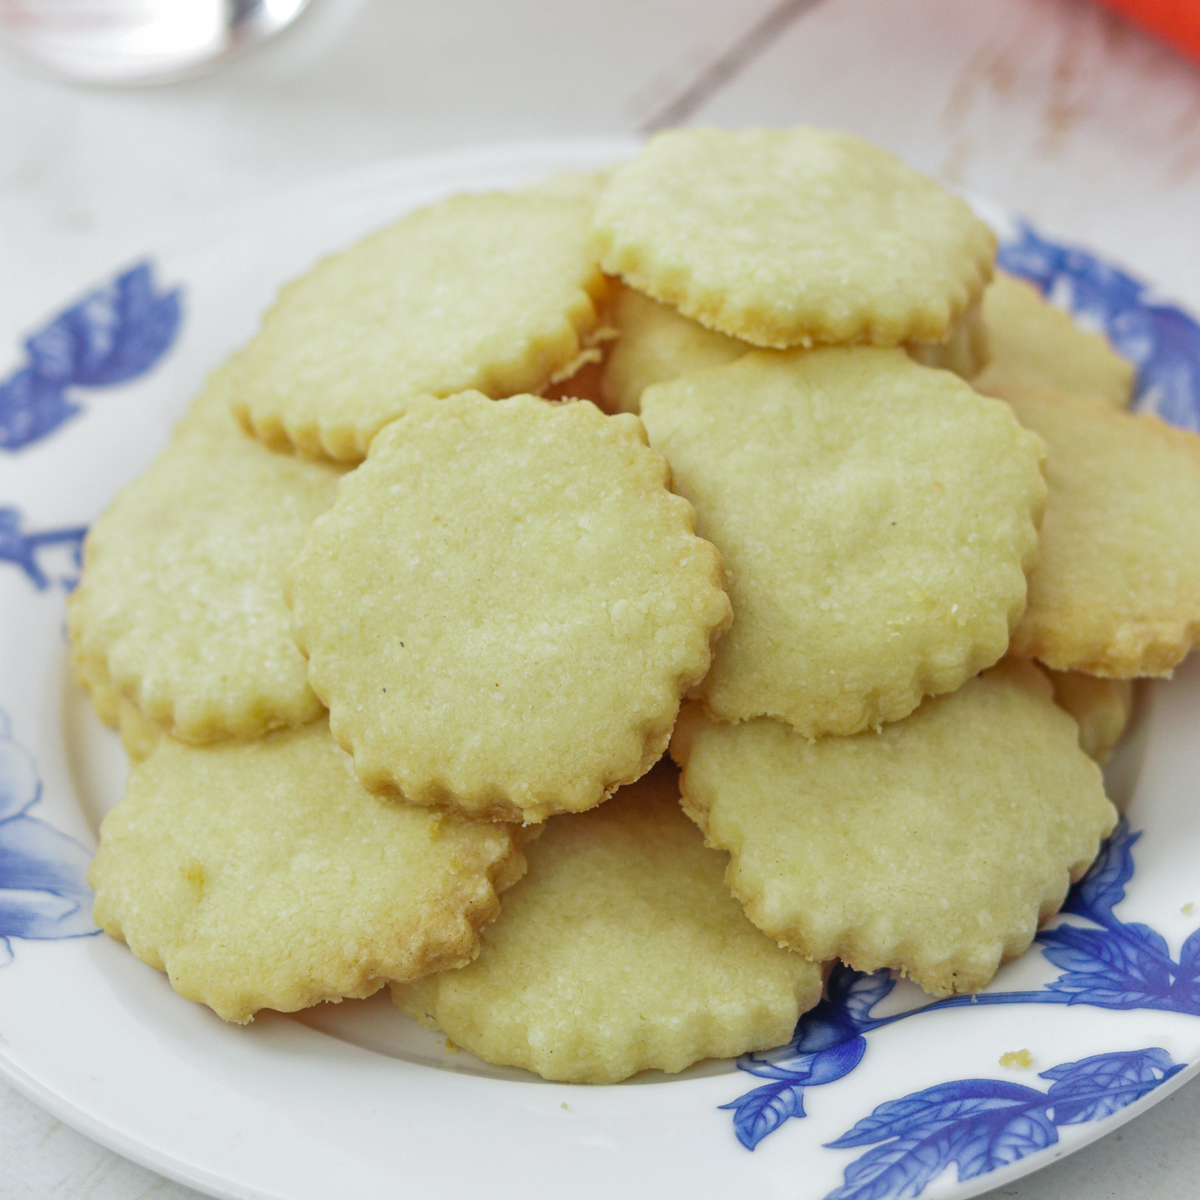 plate of Uppakra - Swedish Butter Cookies